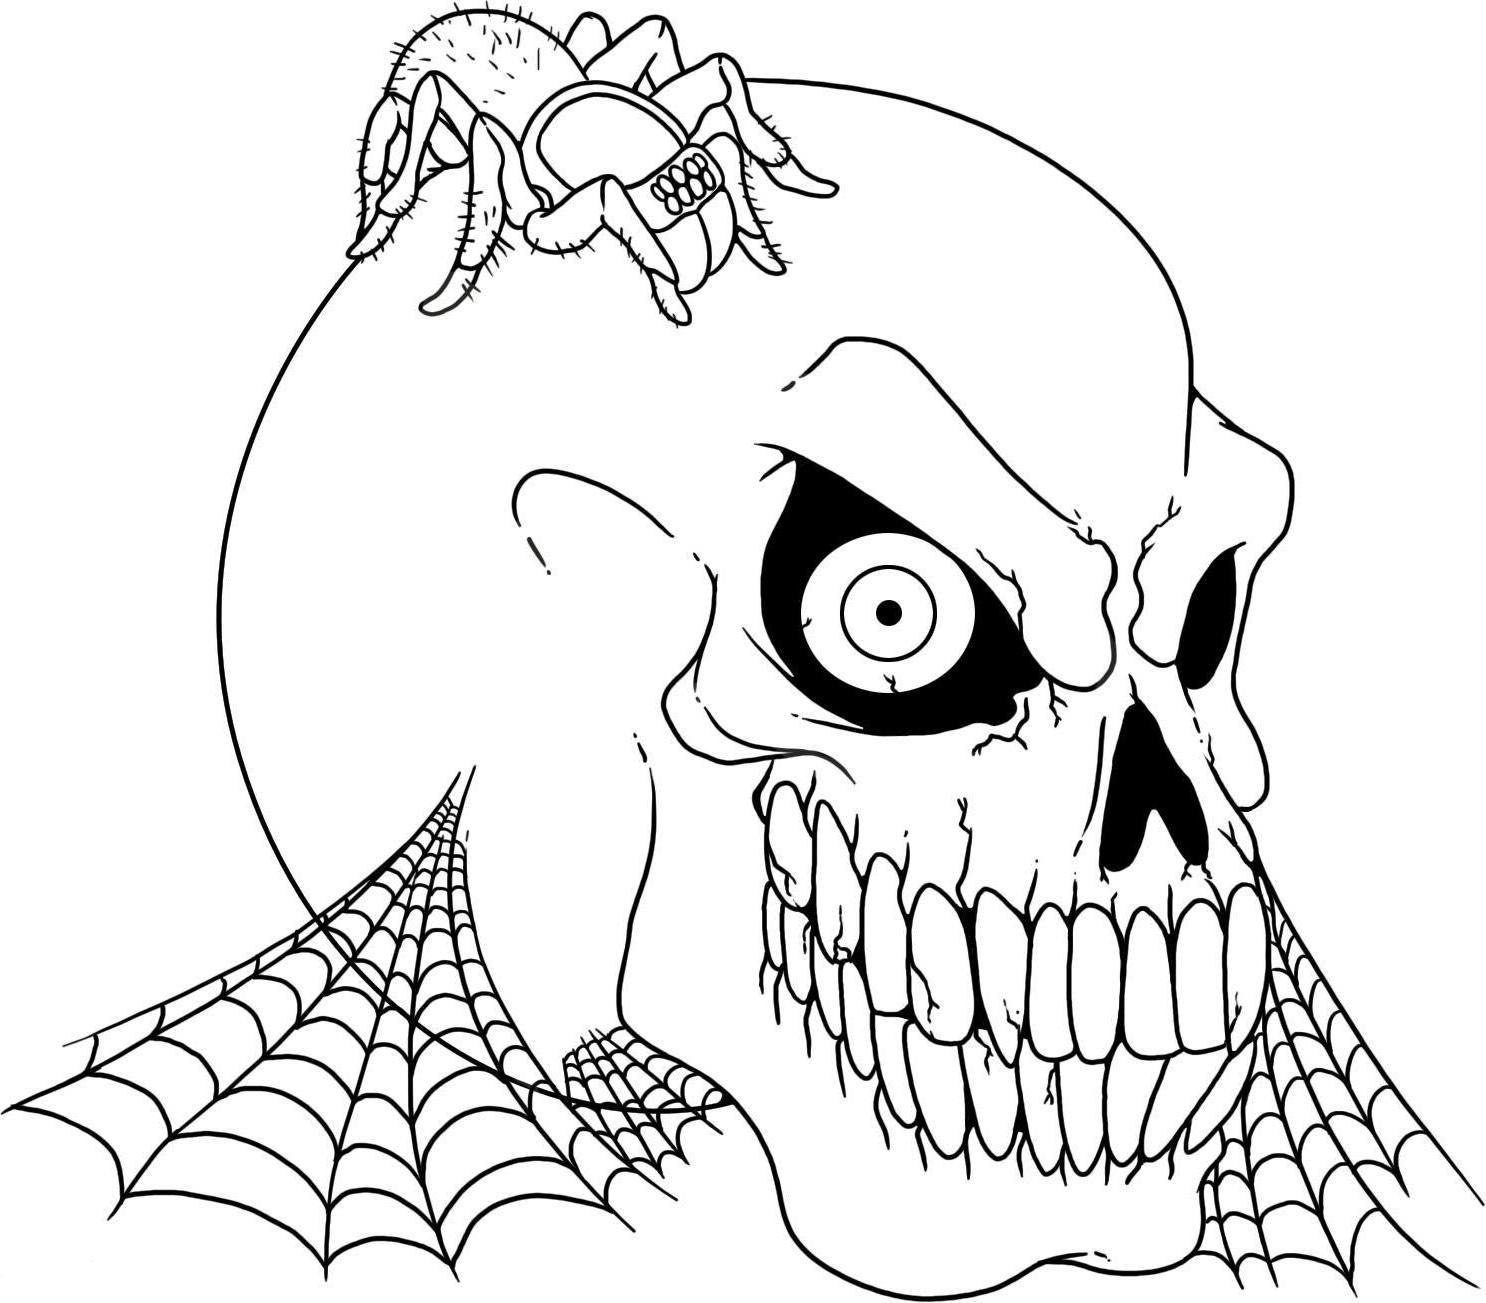 scary halloween skulls coloring pages - Halloween Pictures Coloring Pages